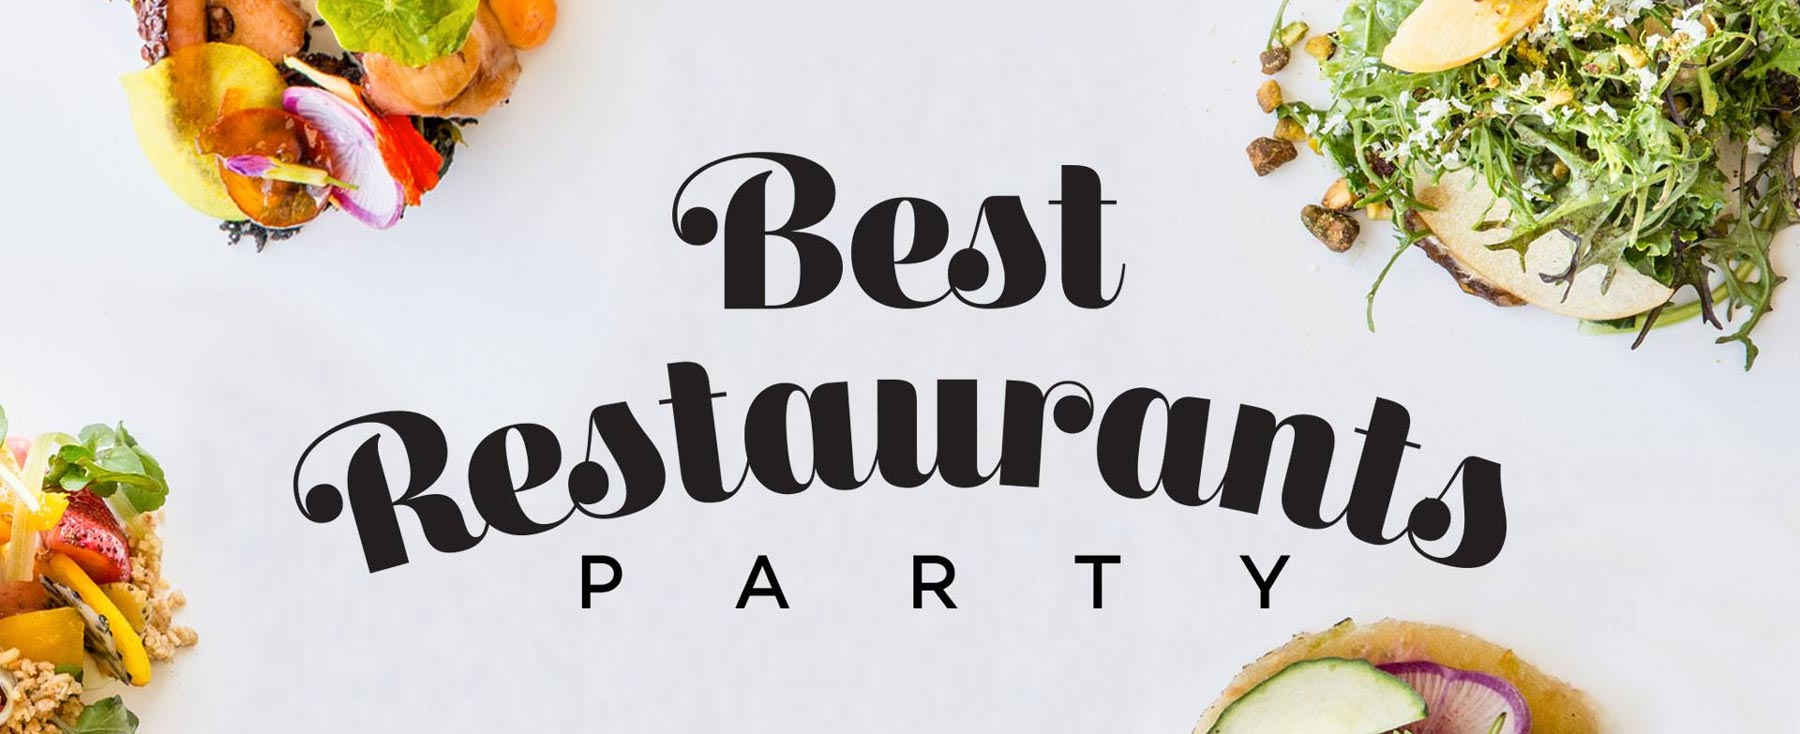 Best Restaurants Party